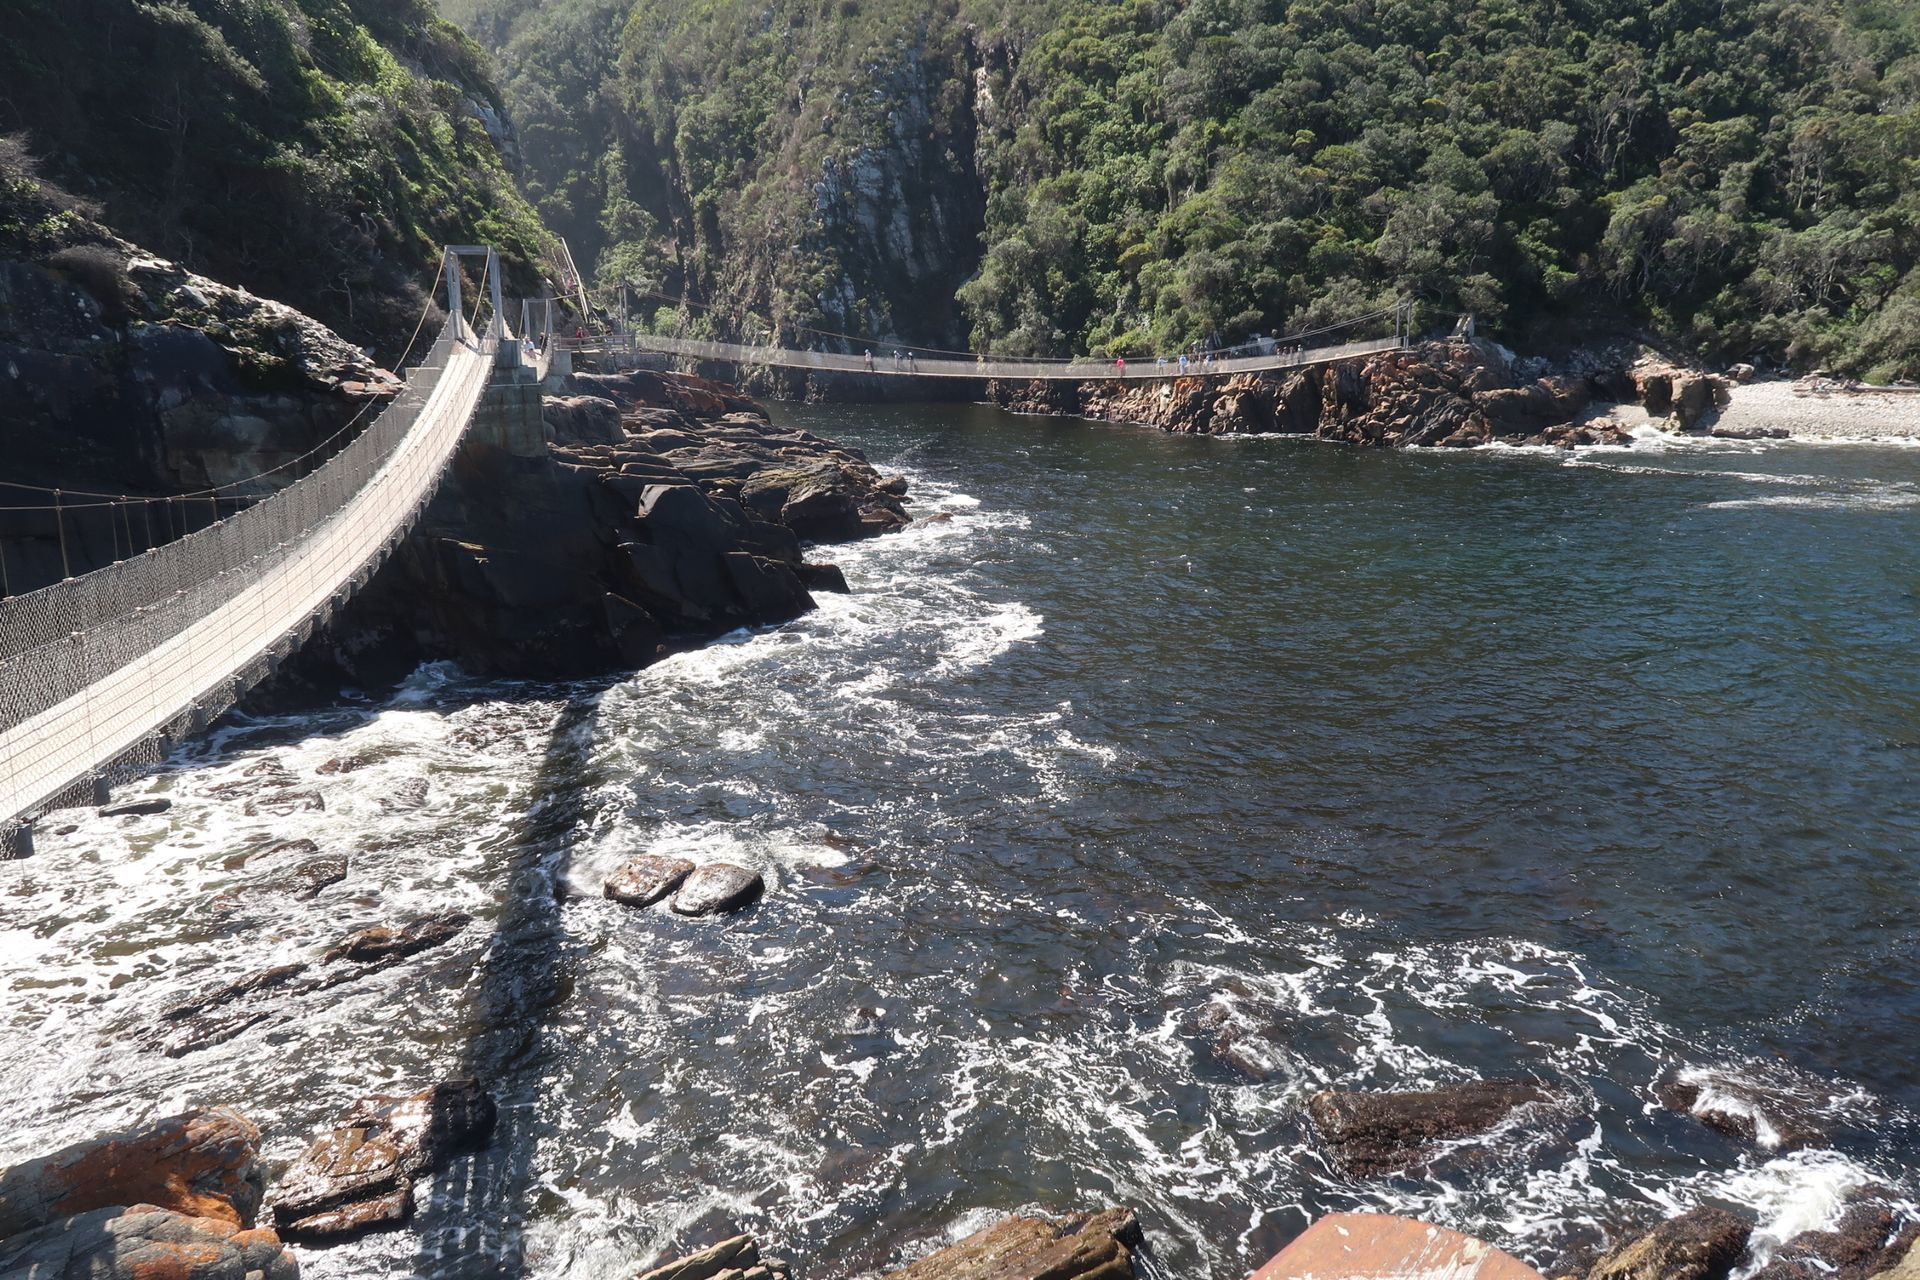 Storms River Mouth, Hängebrücke